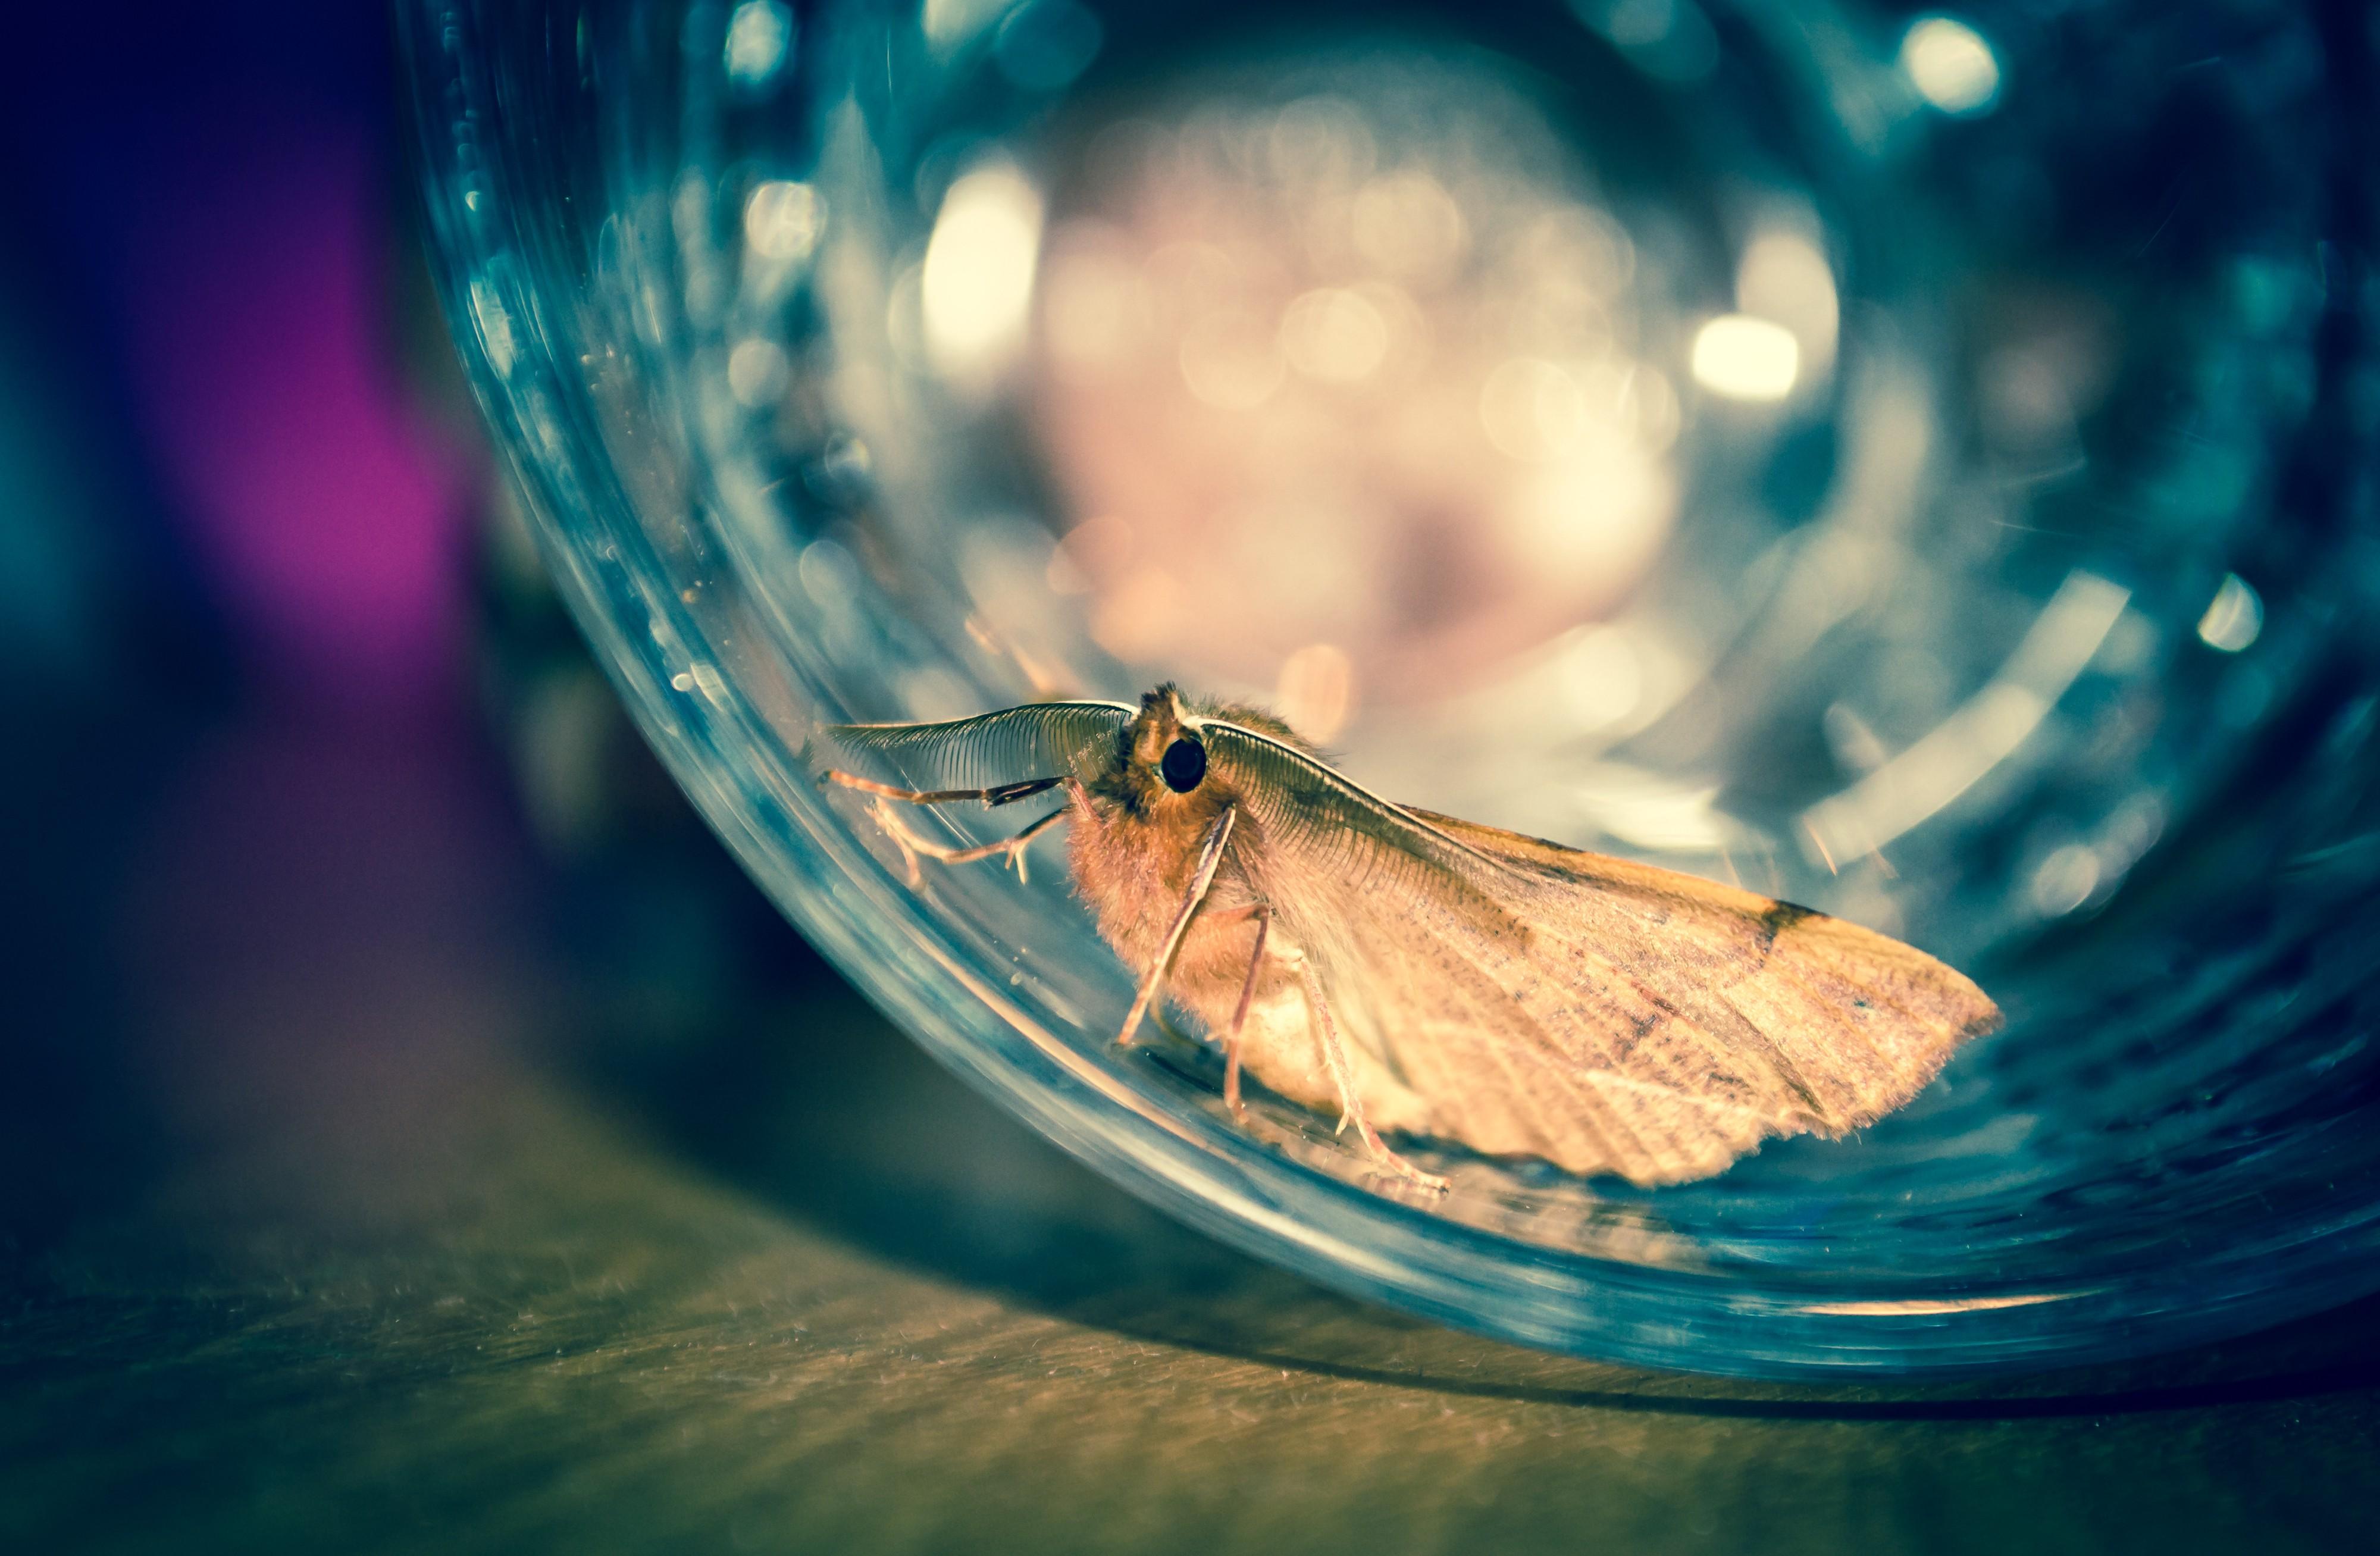 a moth in an open glass container